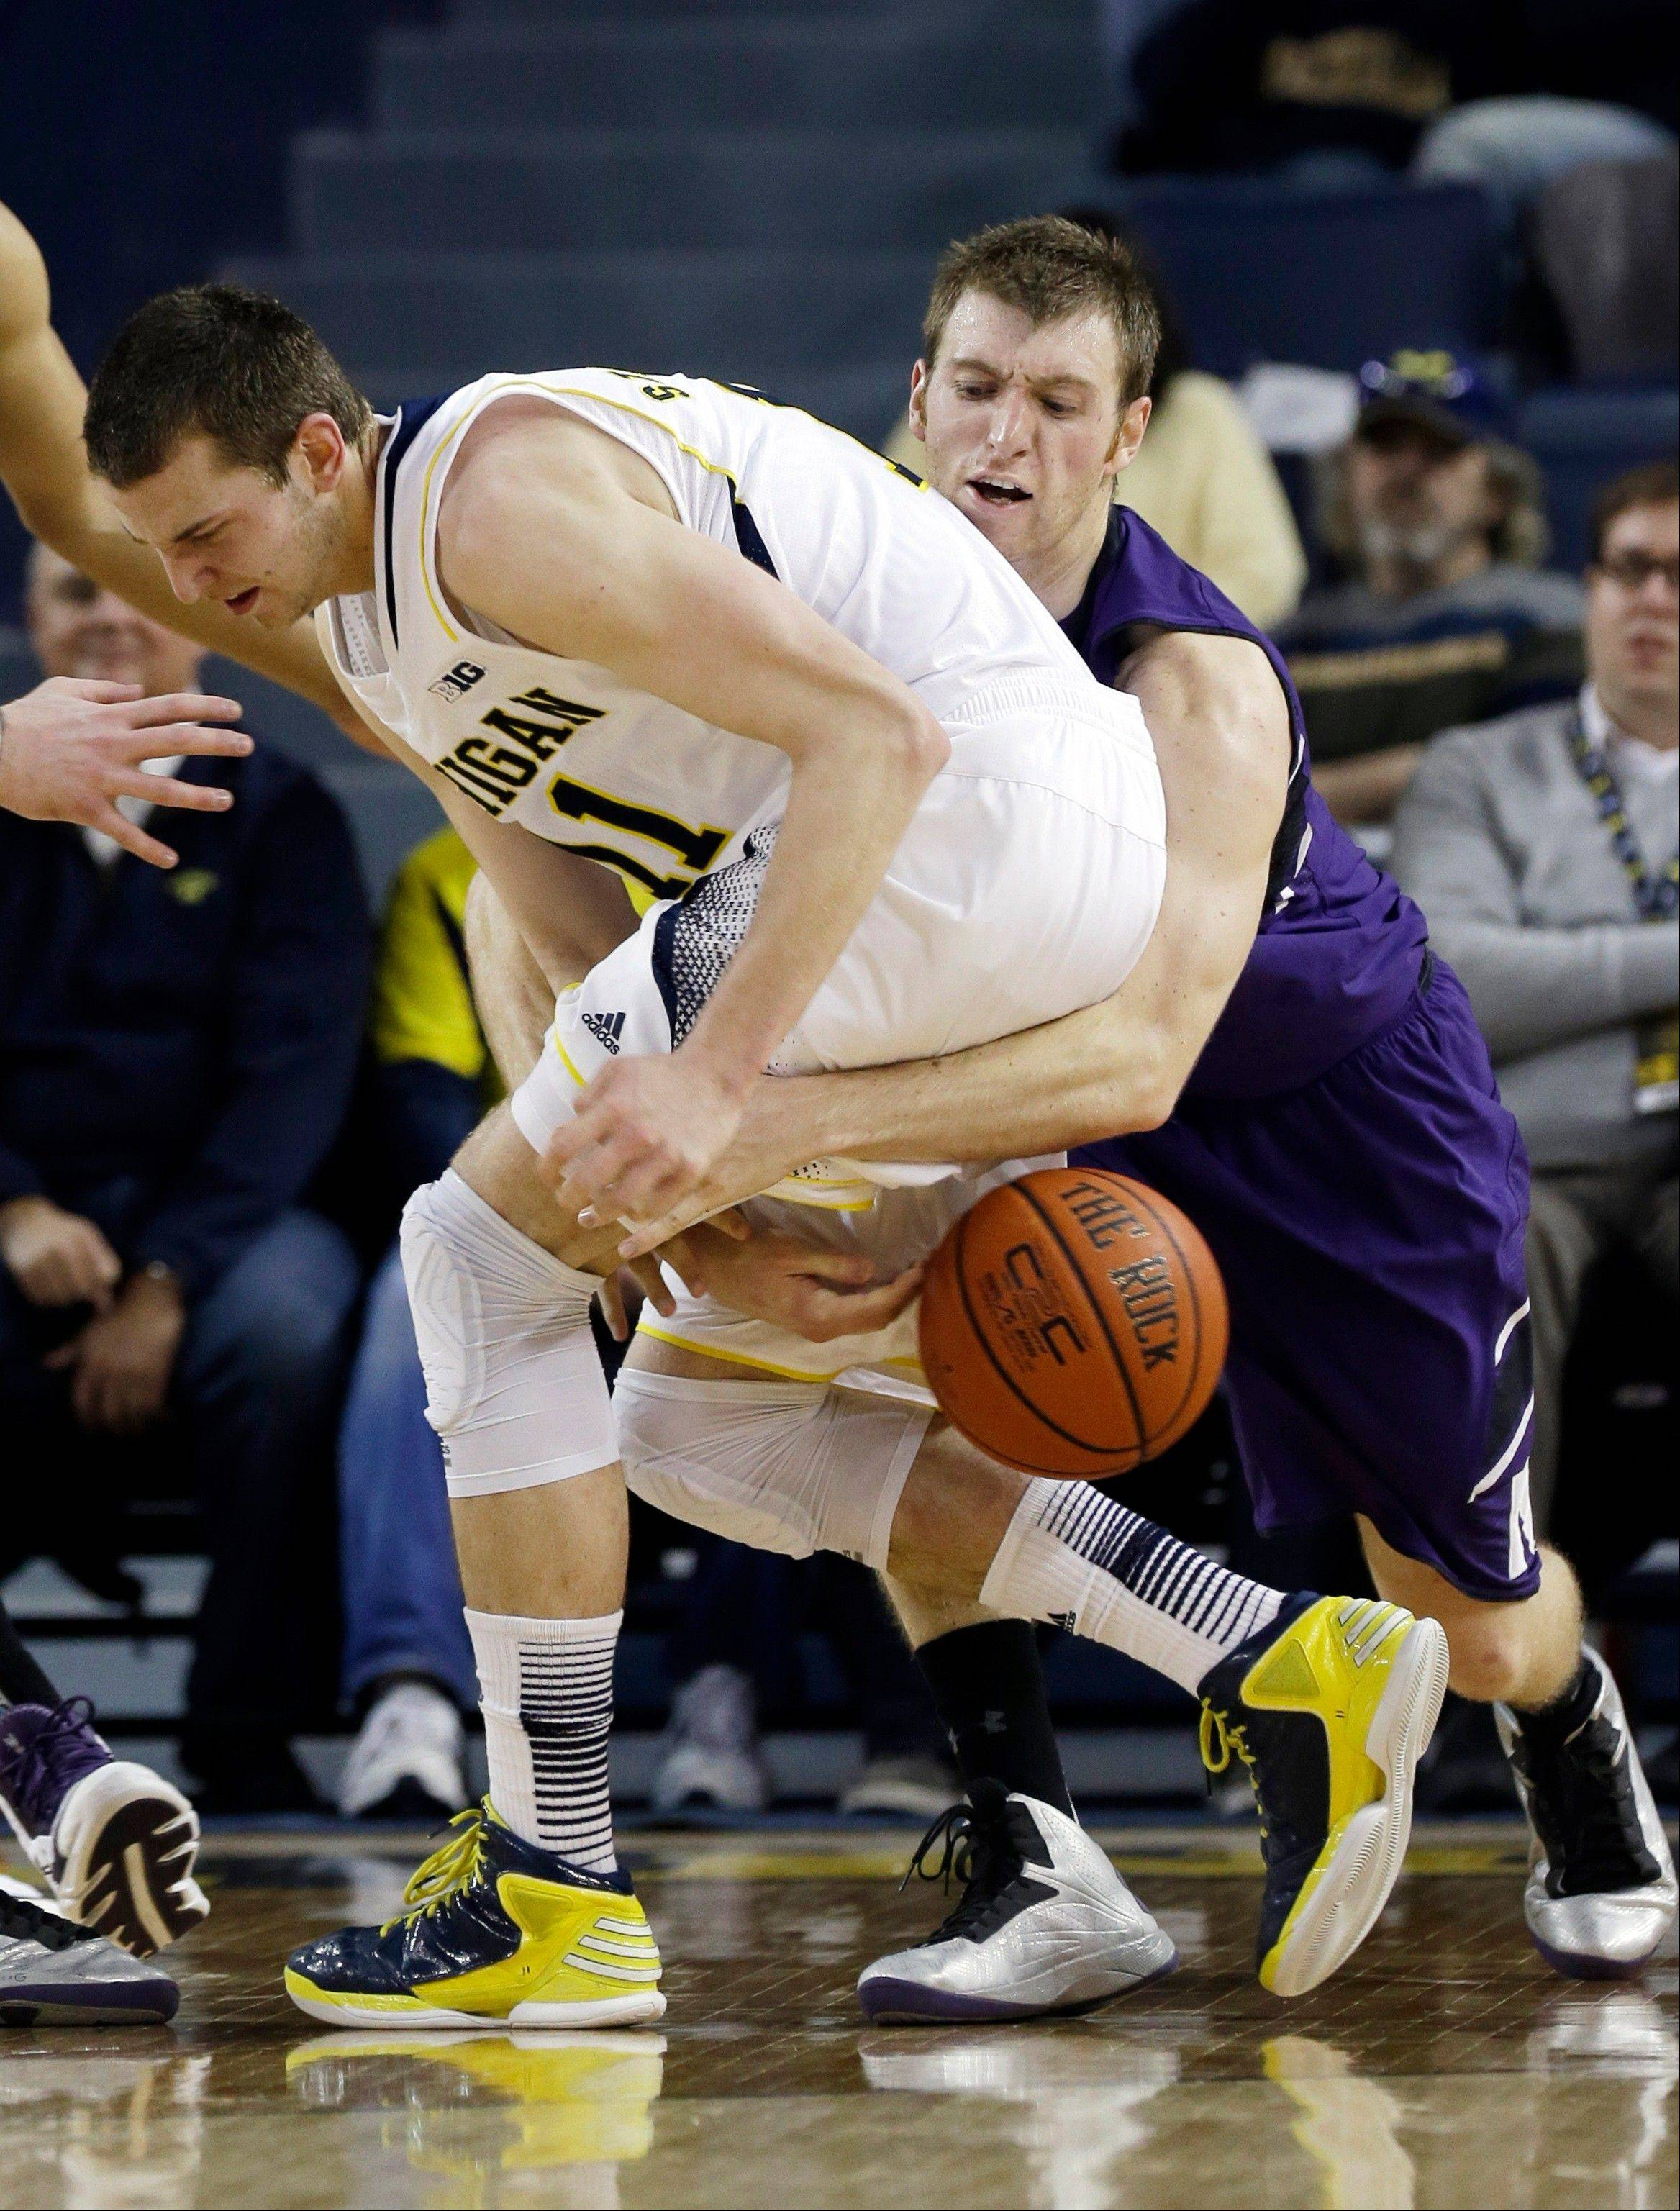 Northwestern guard Alex Marcotullio, right, reaches in on Michigan guard Nik Stauskas (11) during the Wolverines' win Wednesday night in Ann Arbor.